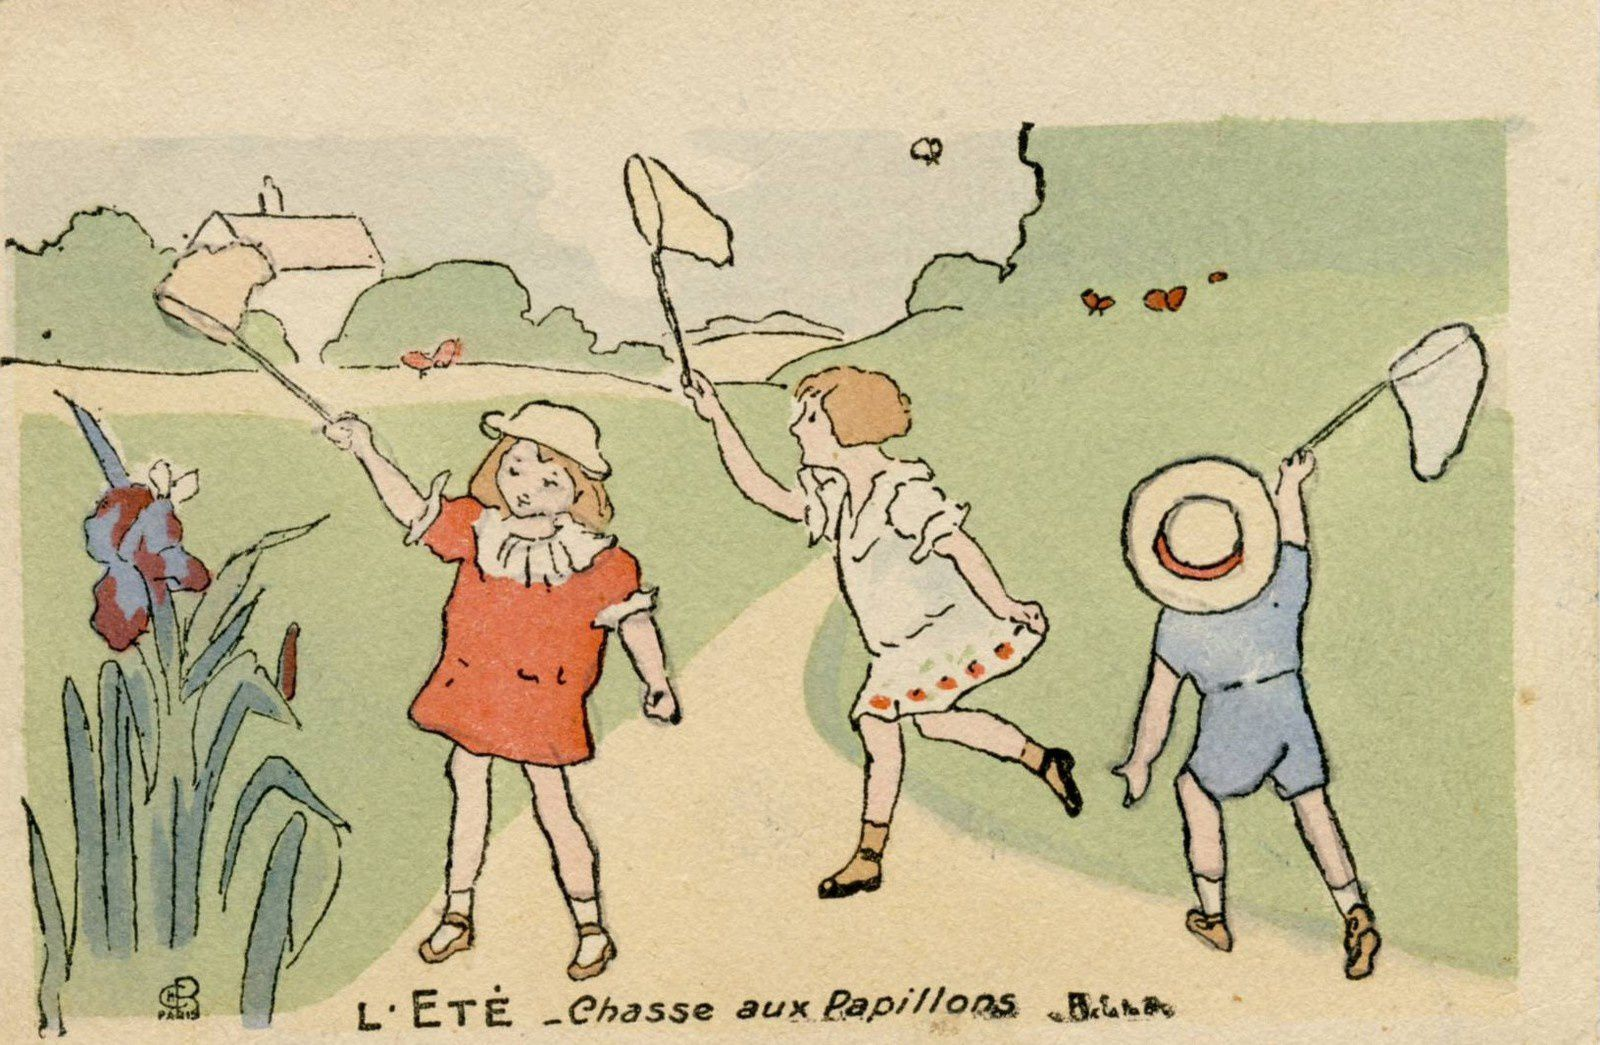 2014-Illustrator Henriette DELALAIN. The summer. The butterfly catching. France.